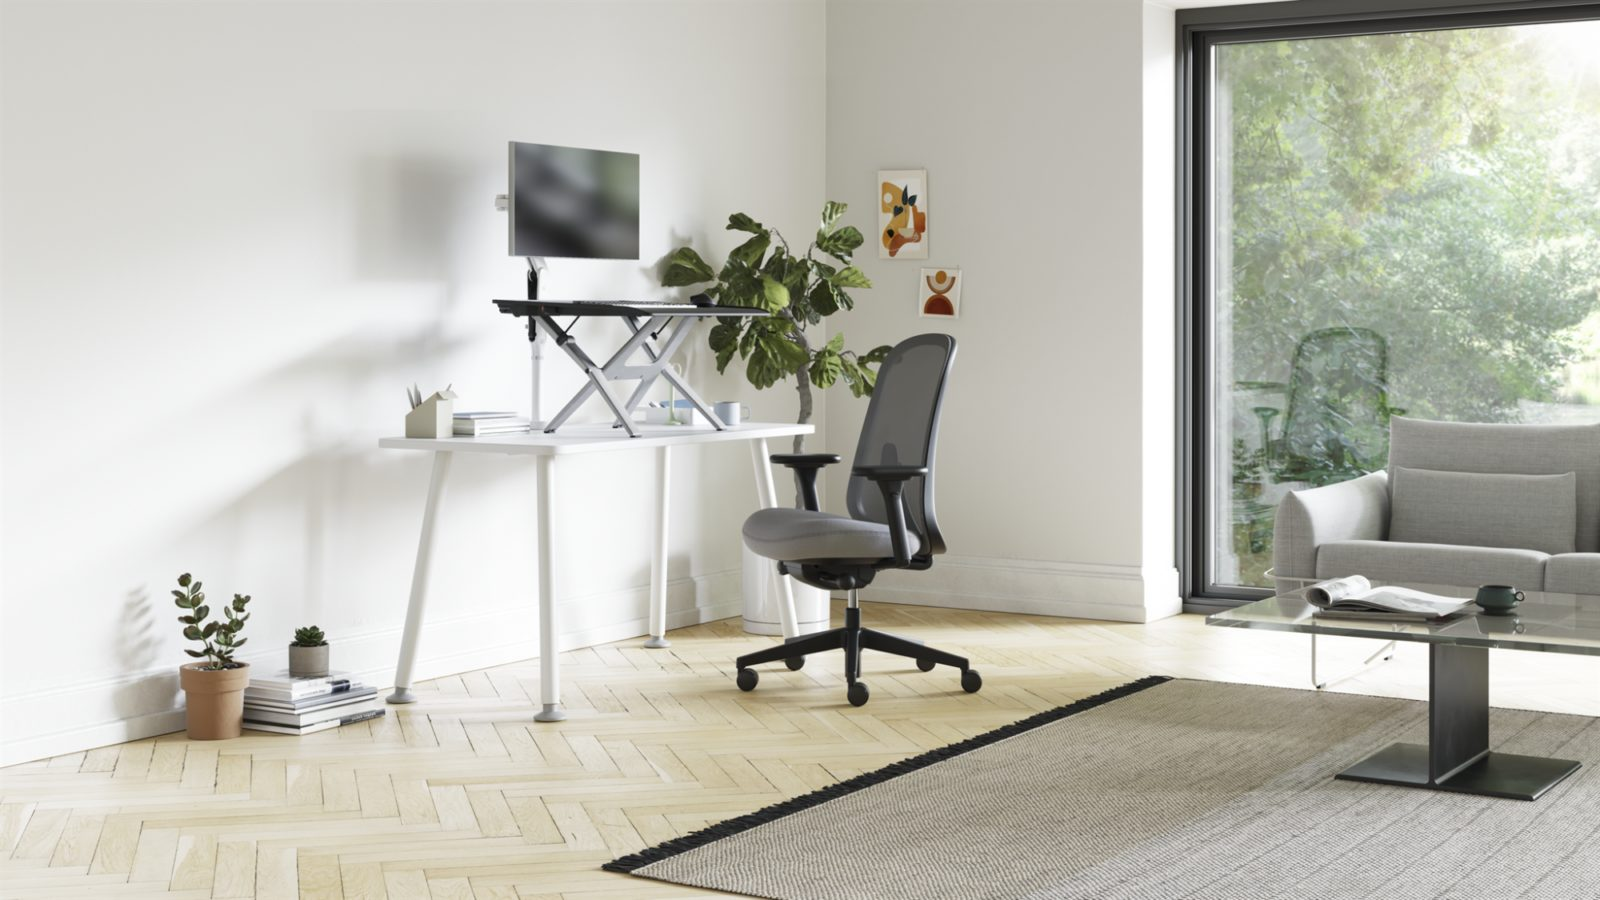 A home office with a Monto Sit-Stand Riser on a Memo Desk with a Verus Chair in front of it.